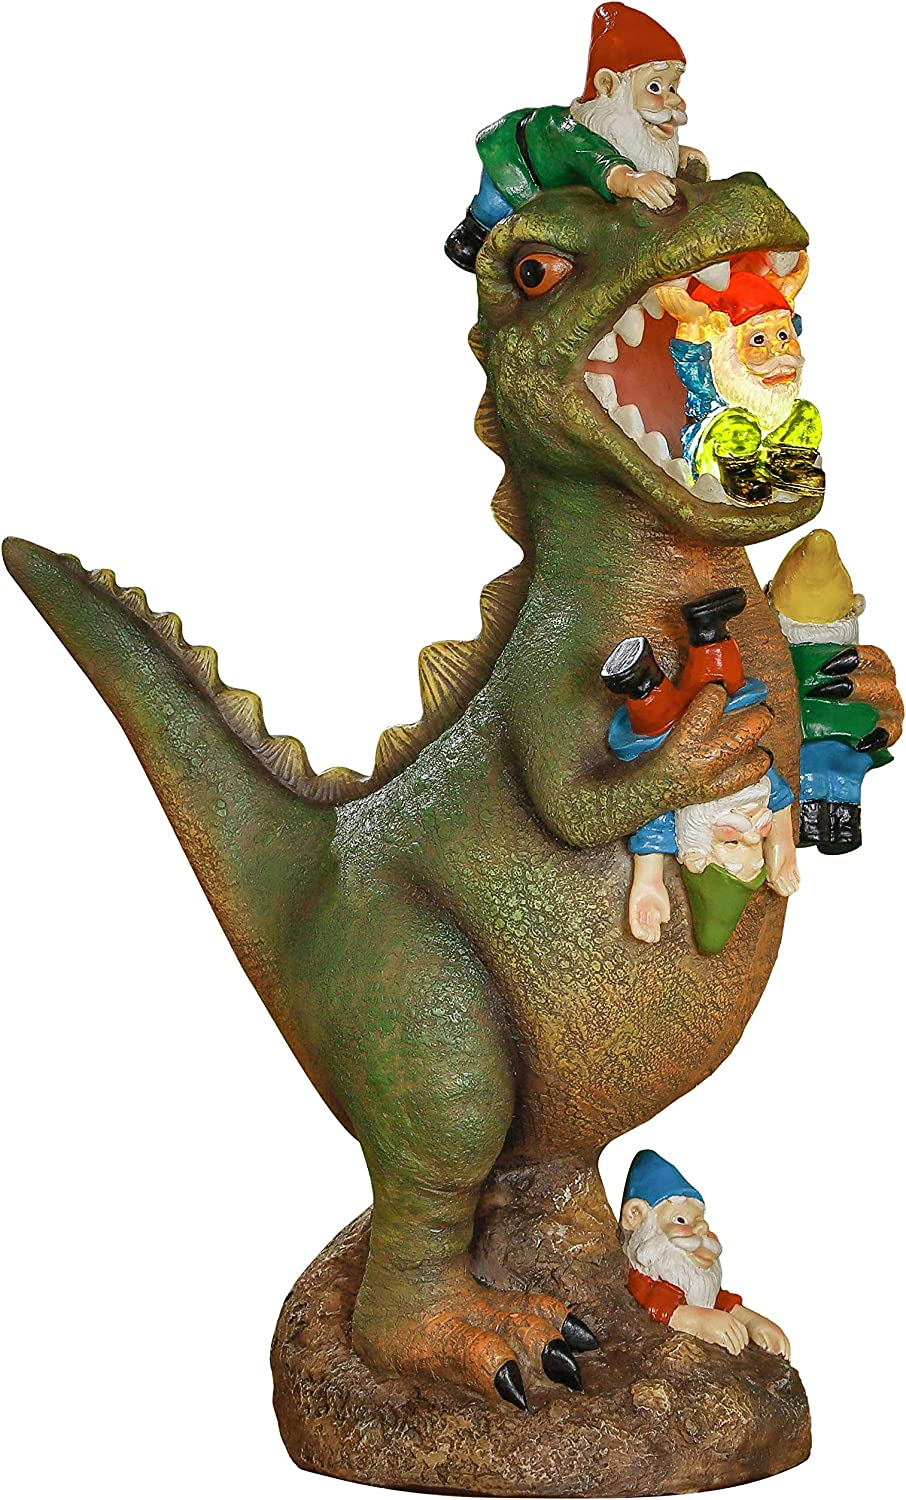 TERESA'S COLLECTIONS Large Garden Gnome Statues Massacre, Solar Powered Dinosaur Eating Gnomes Statue , Funny Garden Sculpture for Outdoor Home Yard Decor, 8 Inch Tall